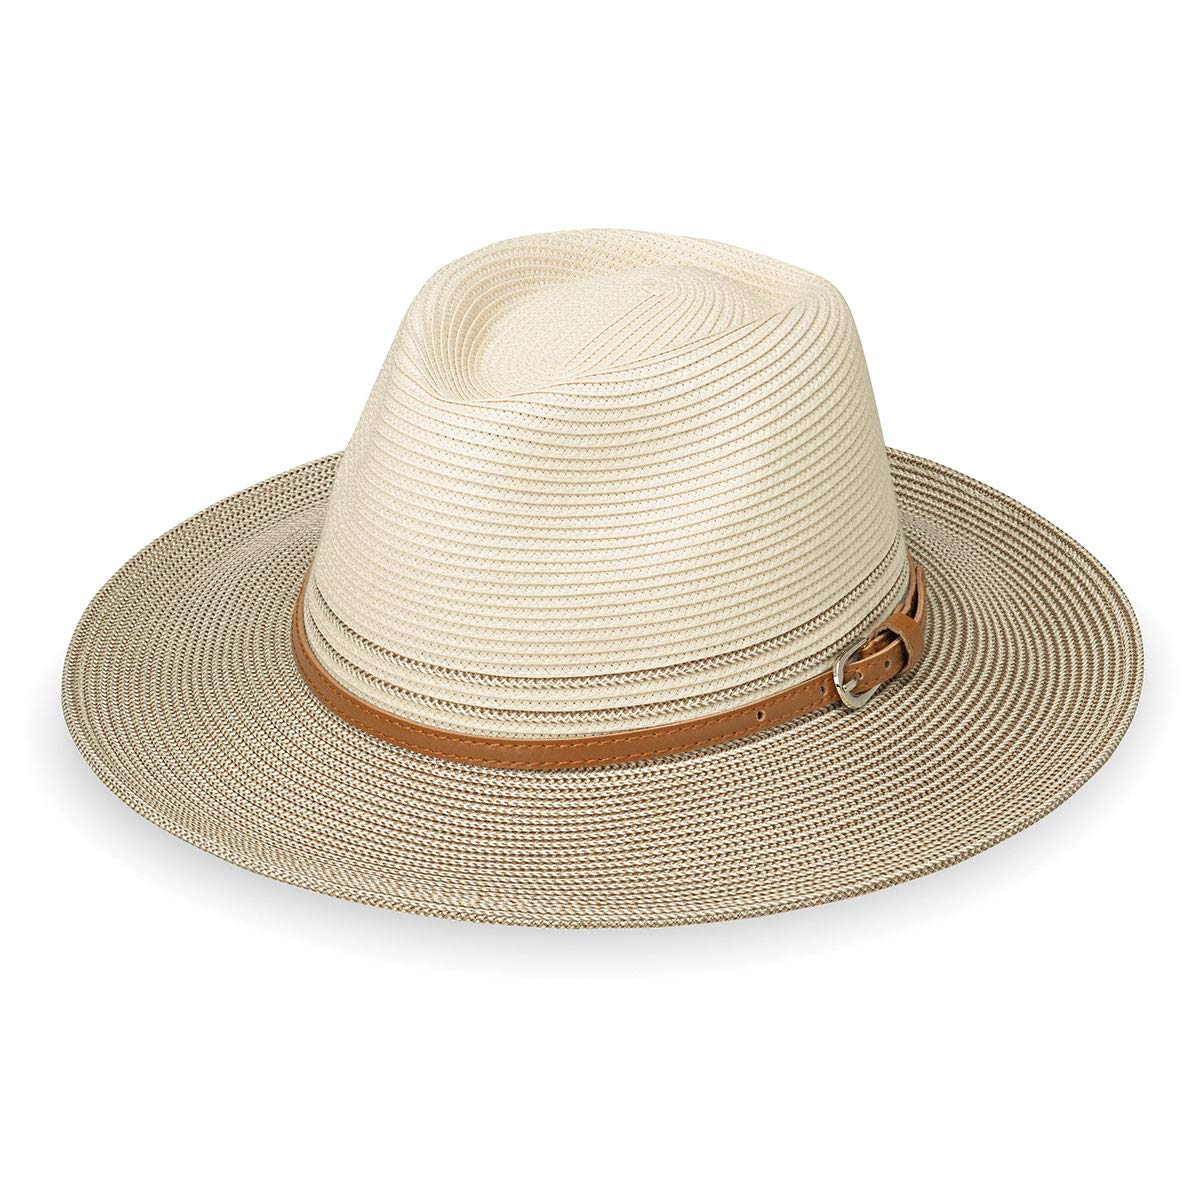 Wallaroo Hat Company Women's Kristy Fedora - UPF 50+, Lightweight, Adjustable, Packable, Designed in Australia, Two-Toned Ivory/Stone